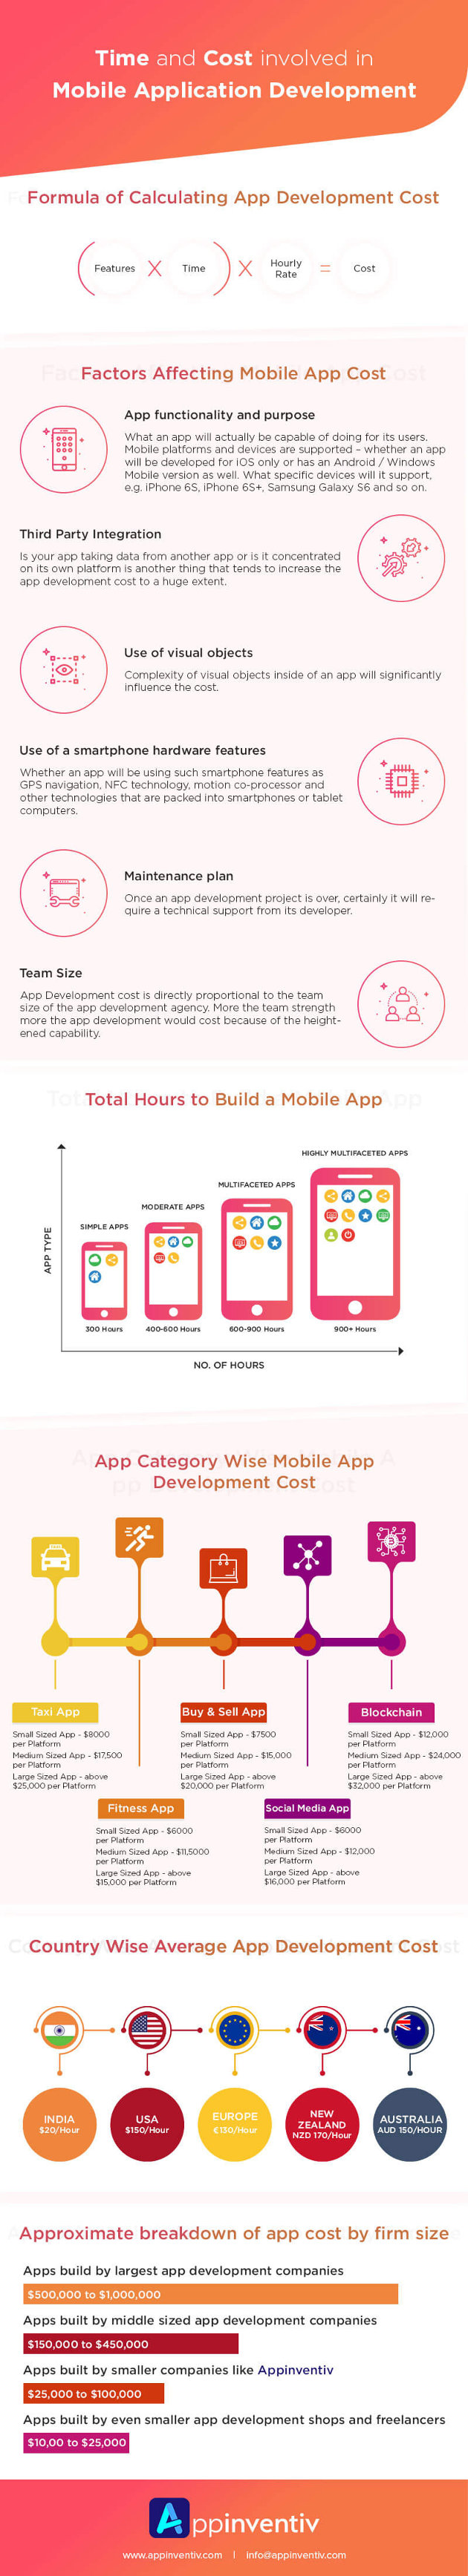 The Time and Cost of Mobile Application Development [Infographic]